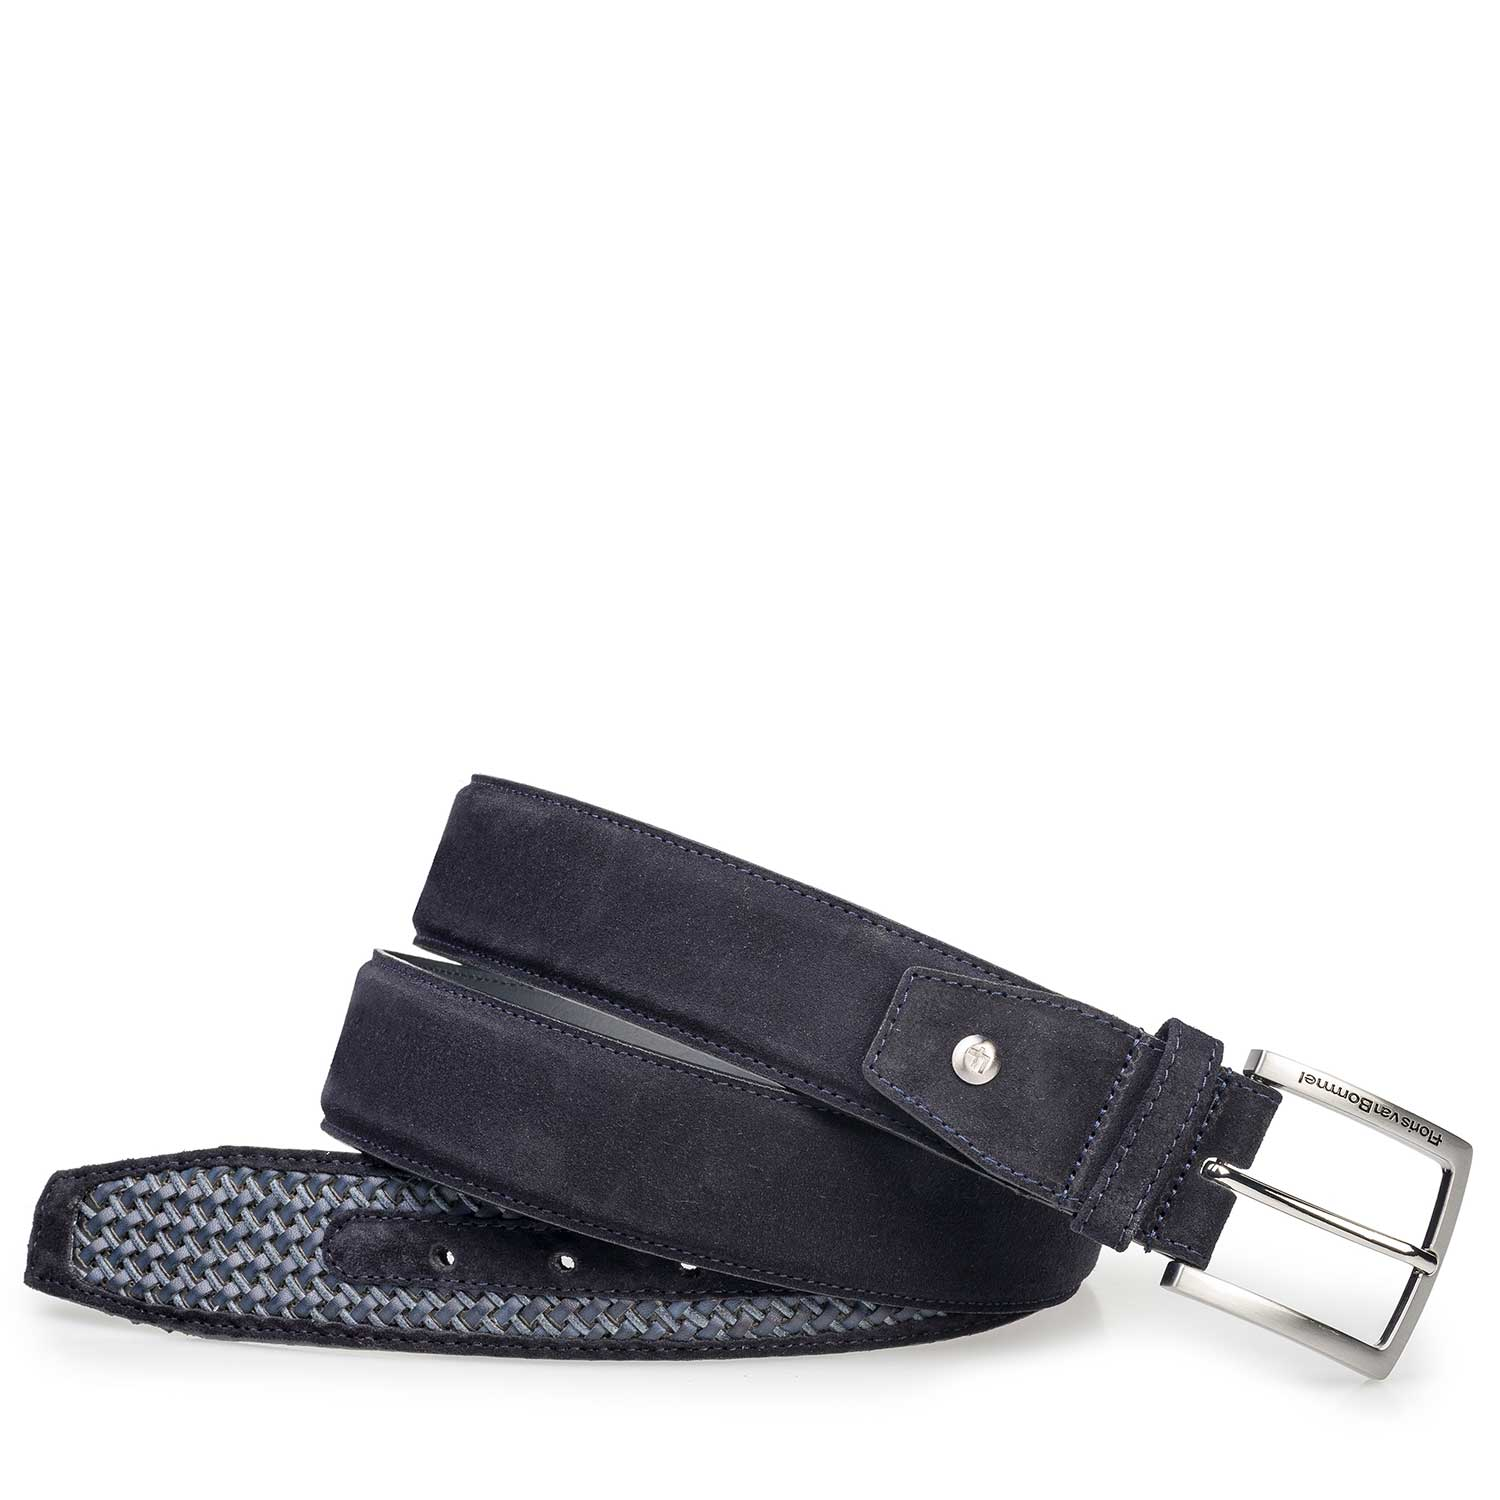 75159/23 - Blue braided leather belt